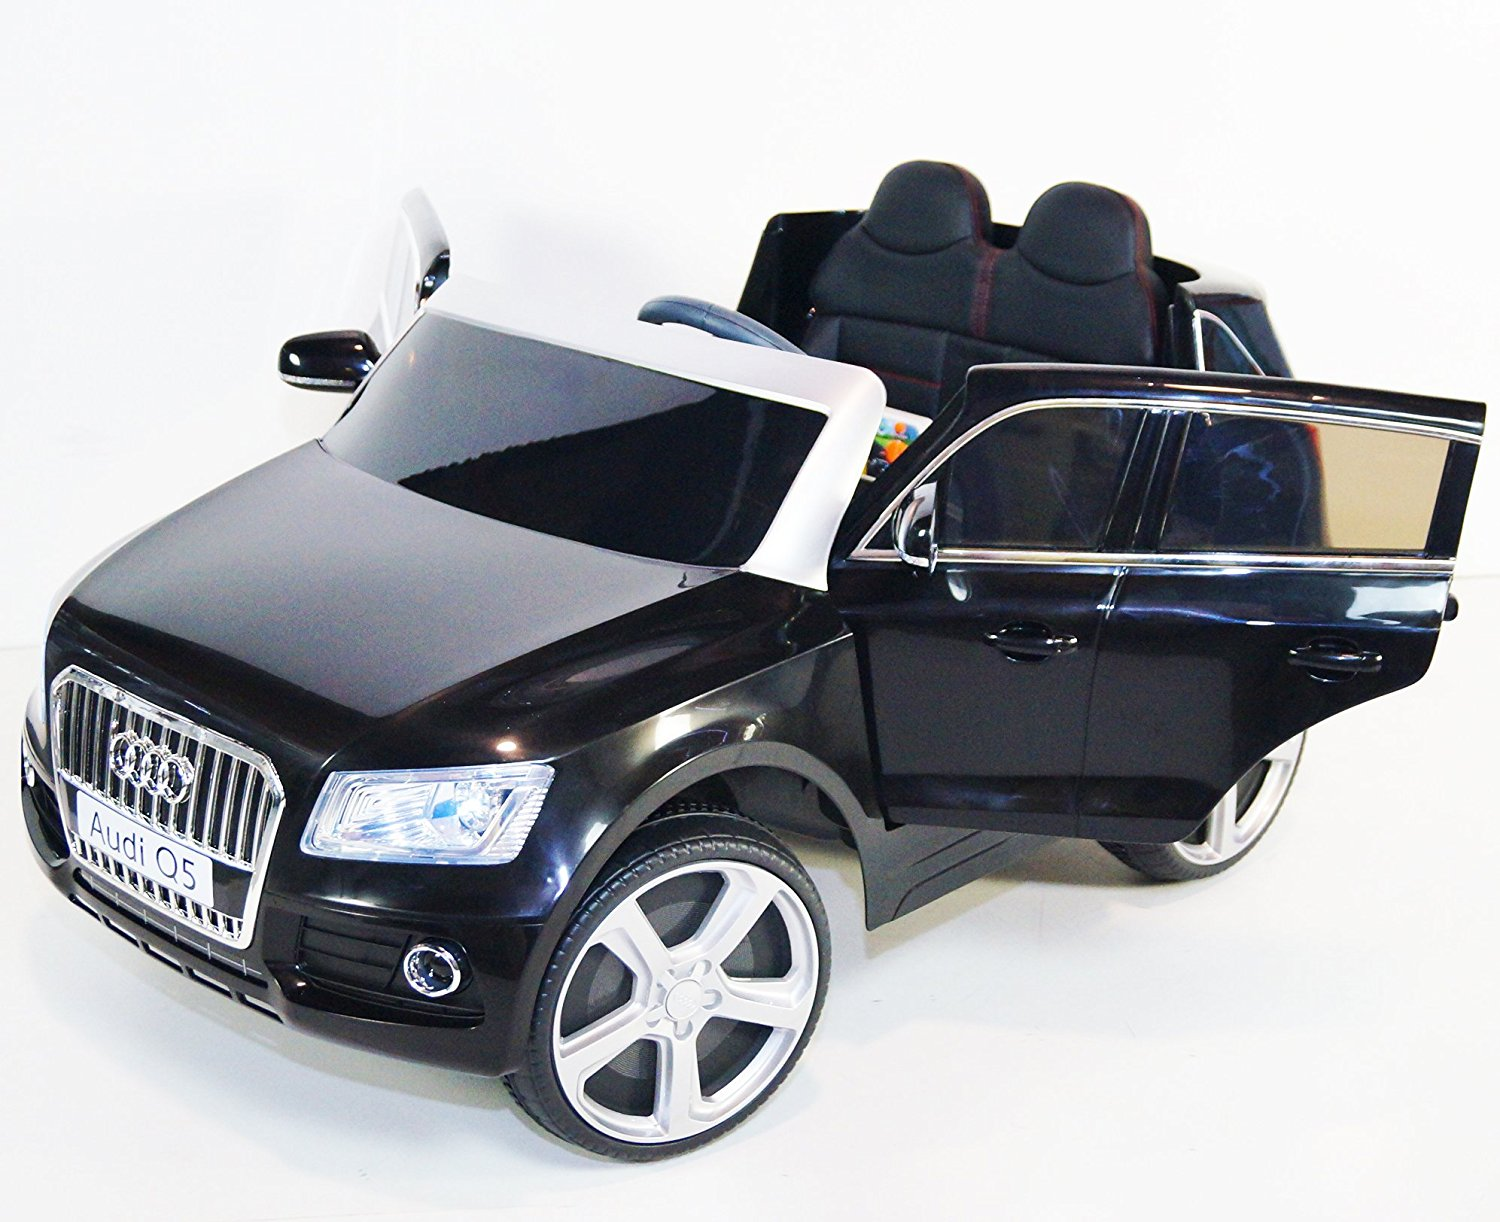 Luxury Audi Q5 Series 12v Electric Kids Ride On Toy Car With Remote Control